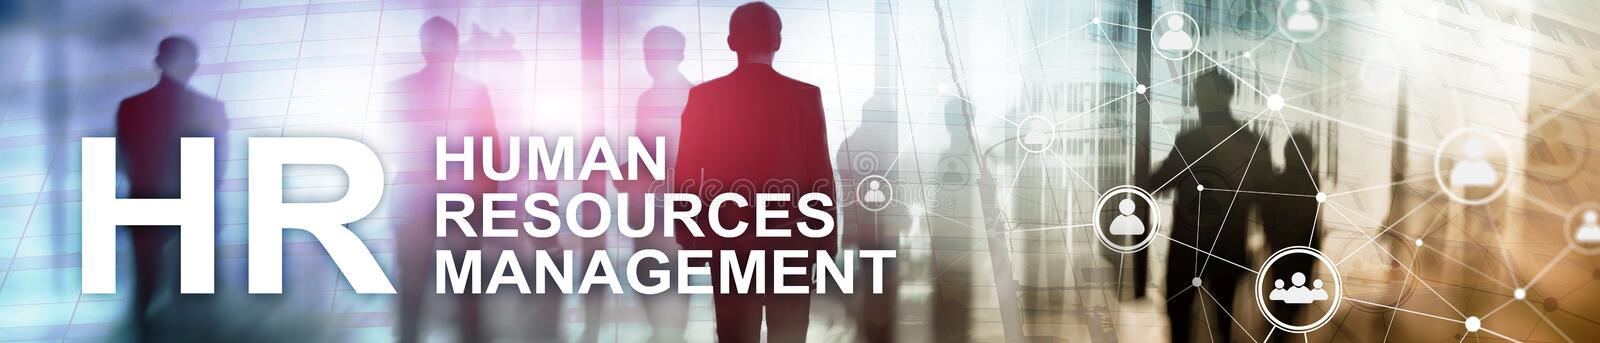 Human resource management, HR, Team Building and recruitment concept on blurred background. Website header banner.  stock images